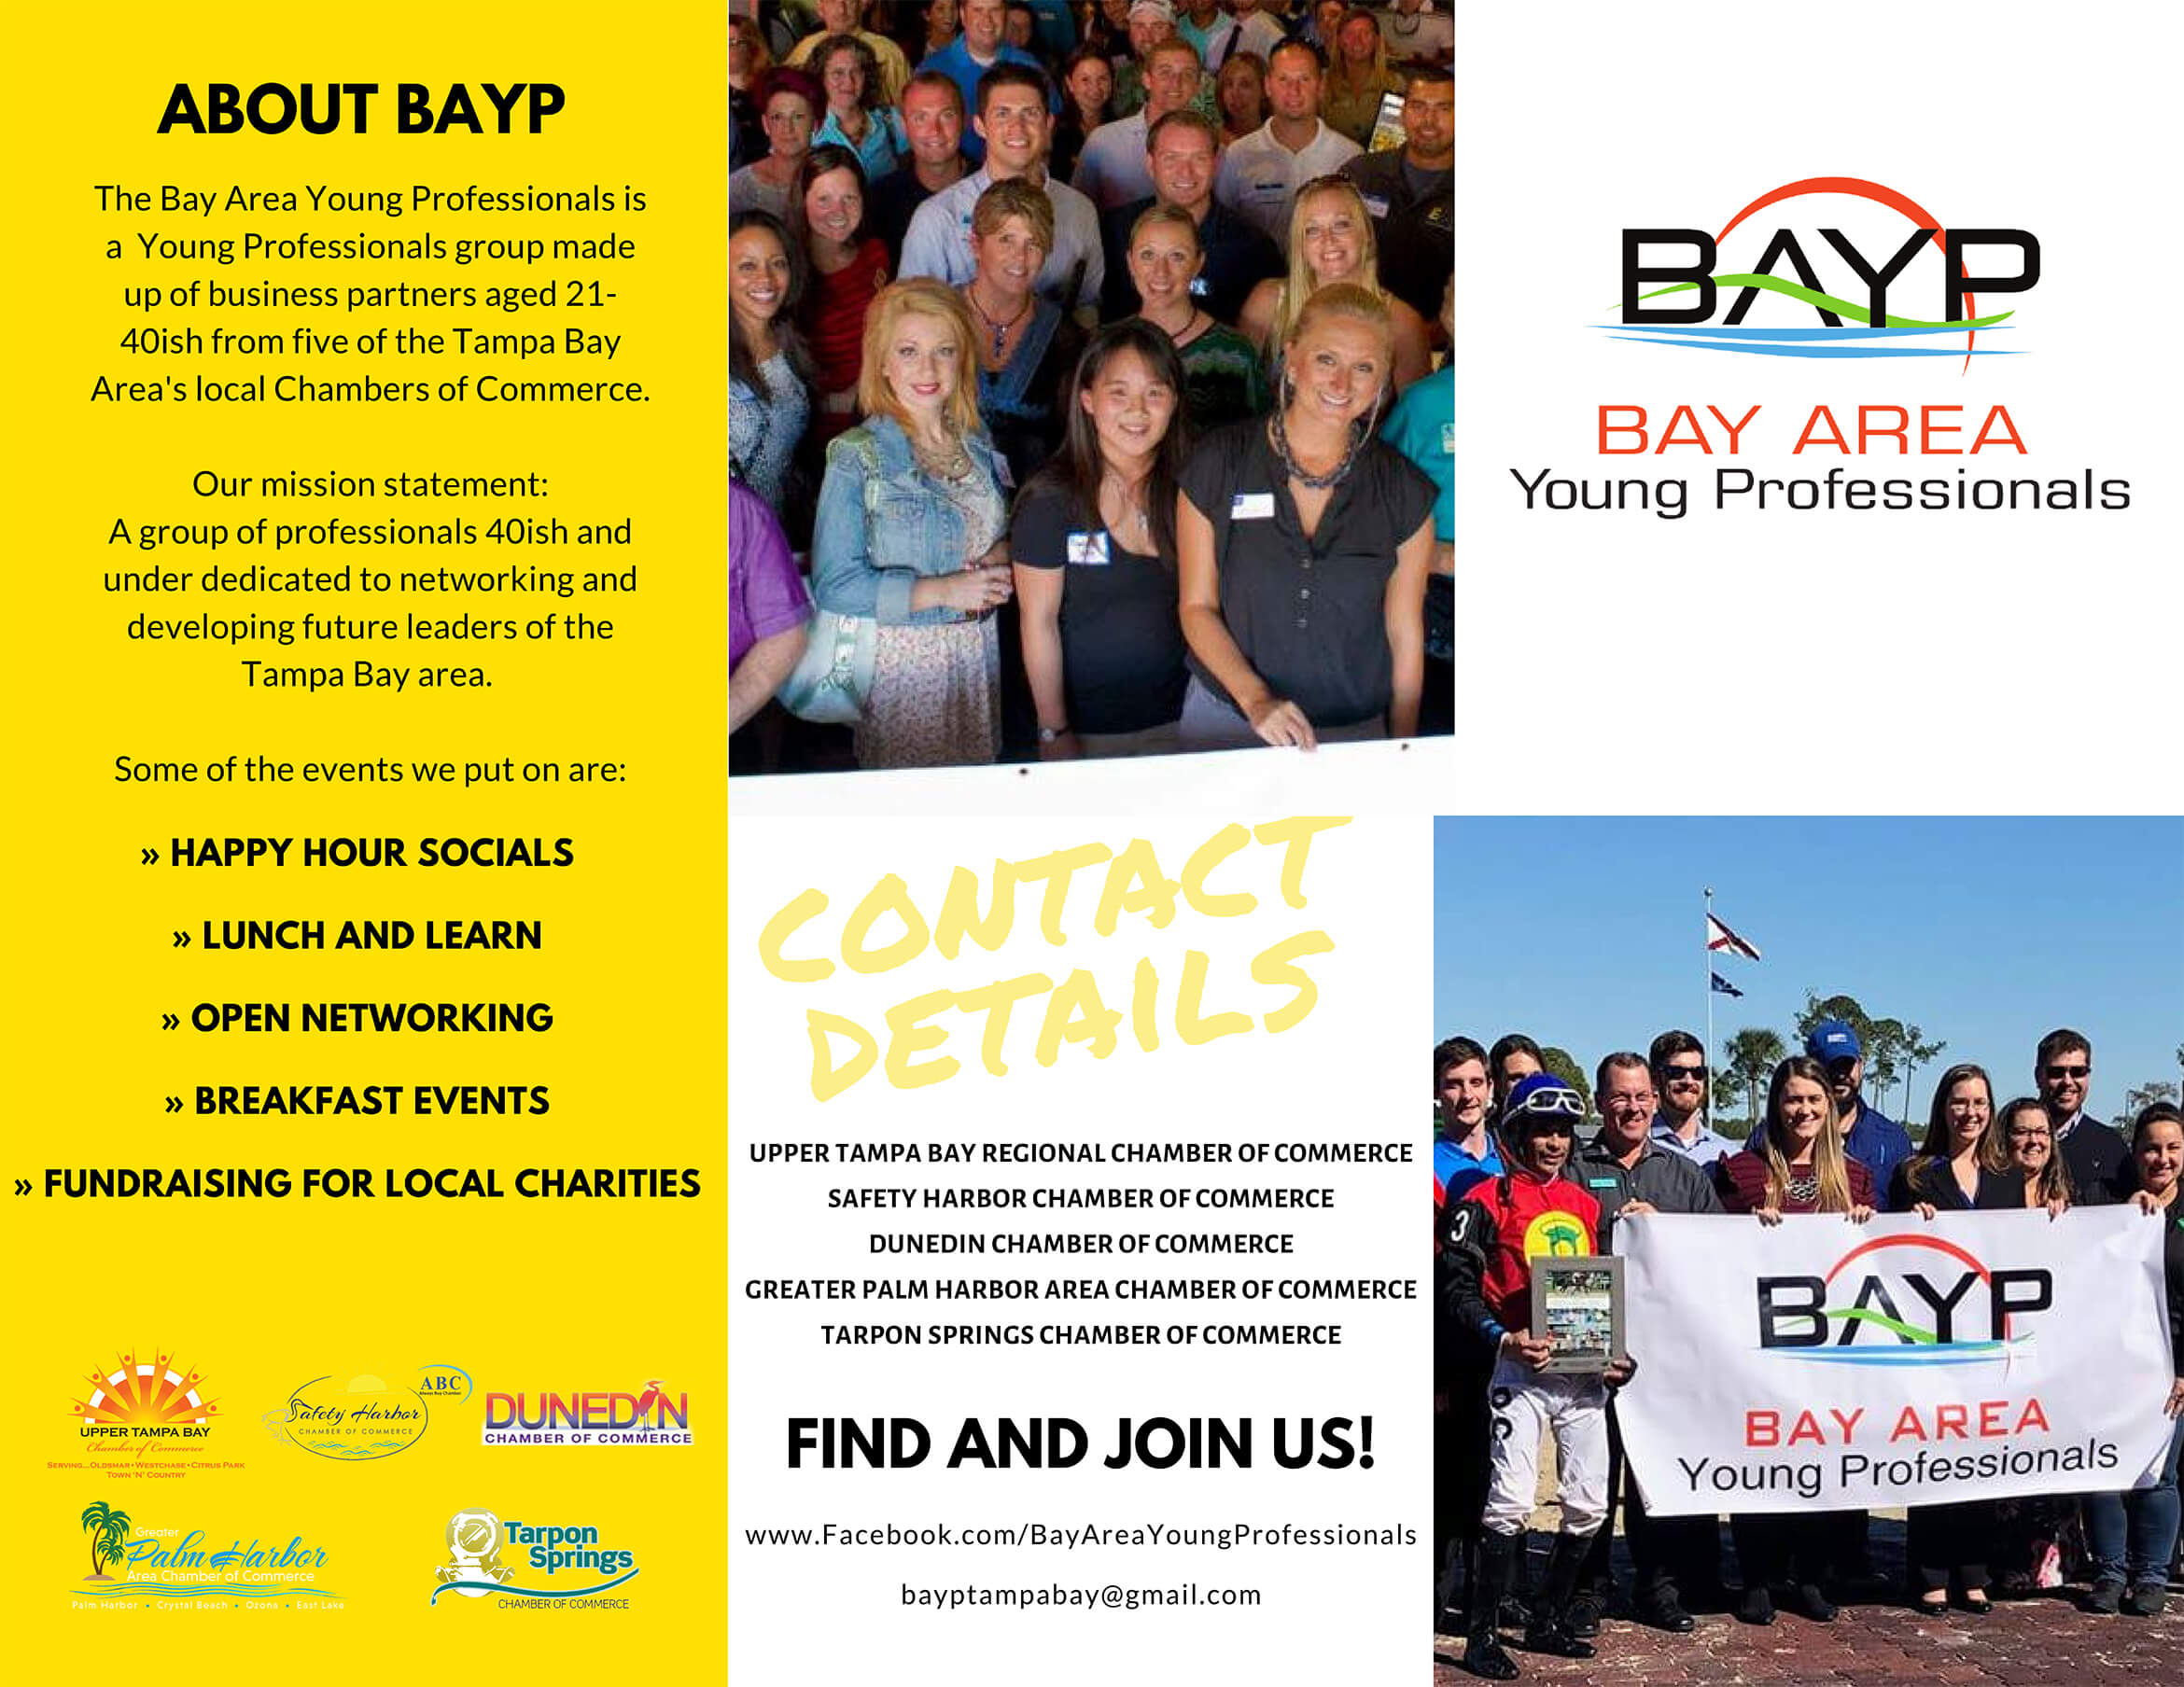 Bay Area Young Professionals